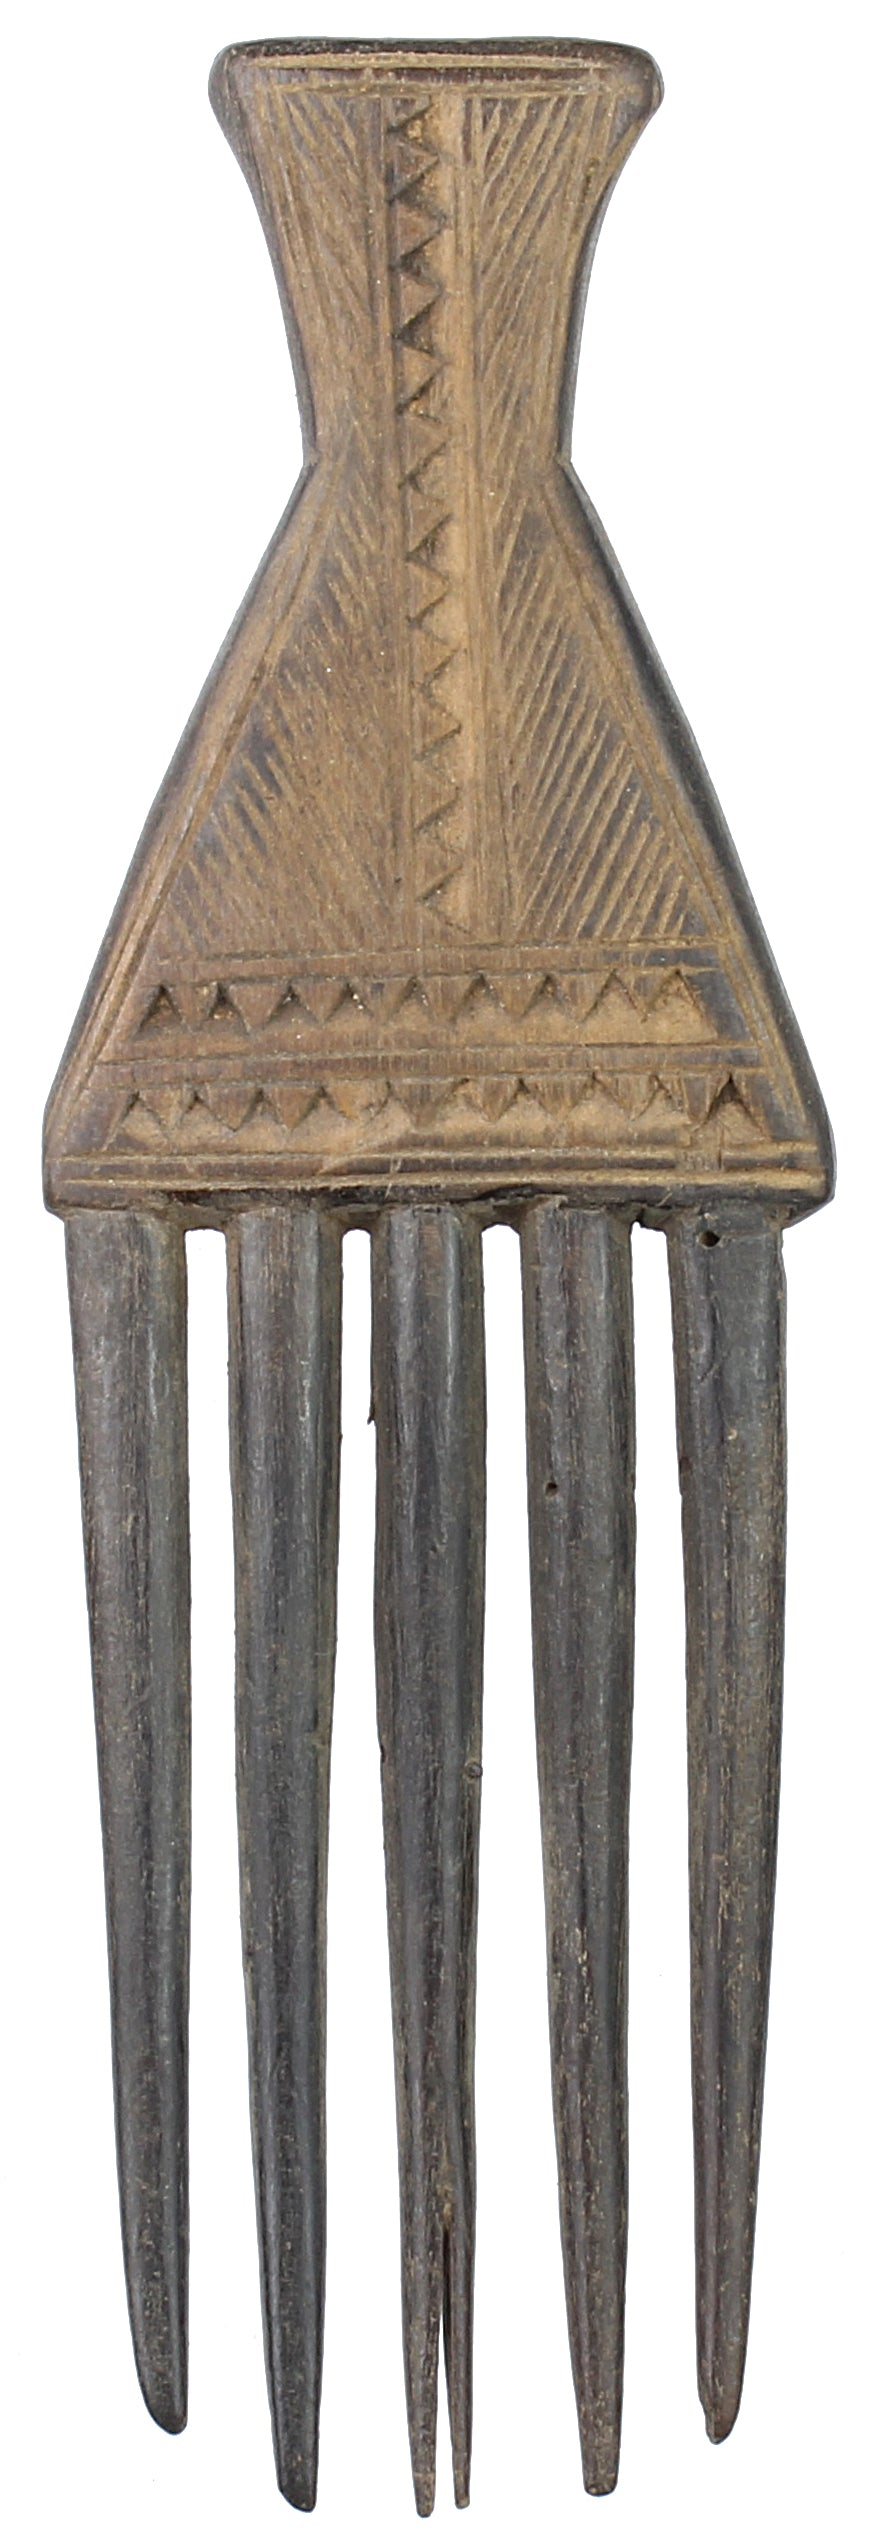 "Vintage Baule Comb from Ivory Coast - 5.75"" x 3.75"" - Niger Bend"